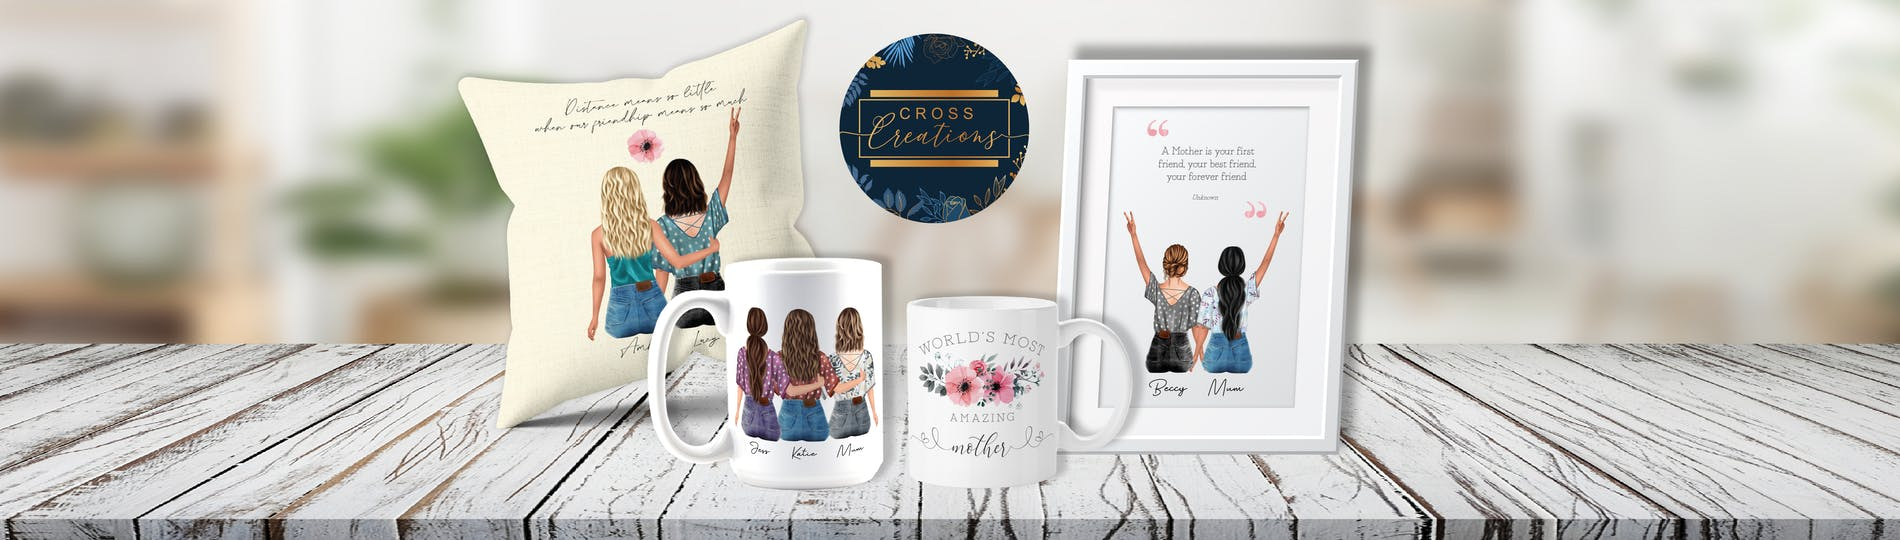 Personalised Gifts & Personalised Presents from Cross Creations